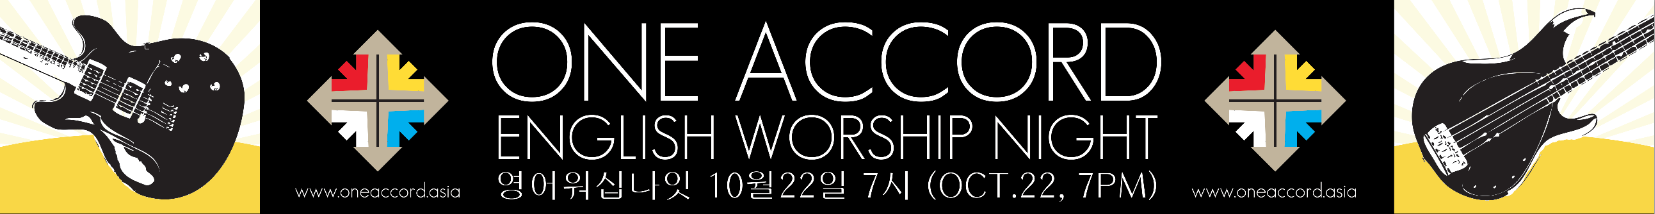 One Accord - 7m banner